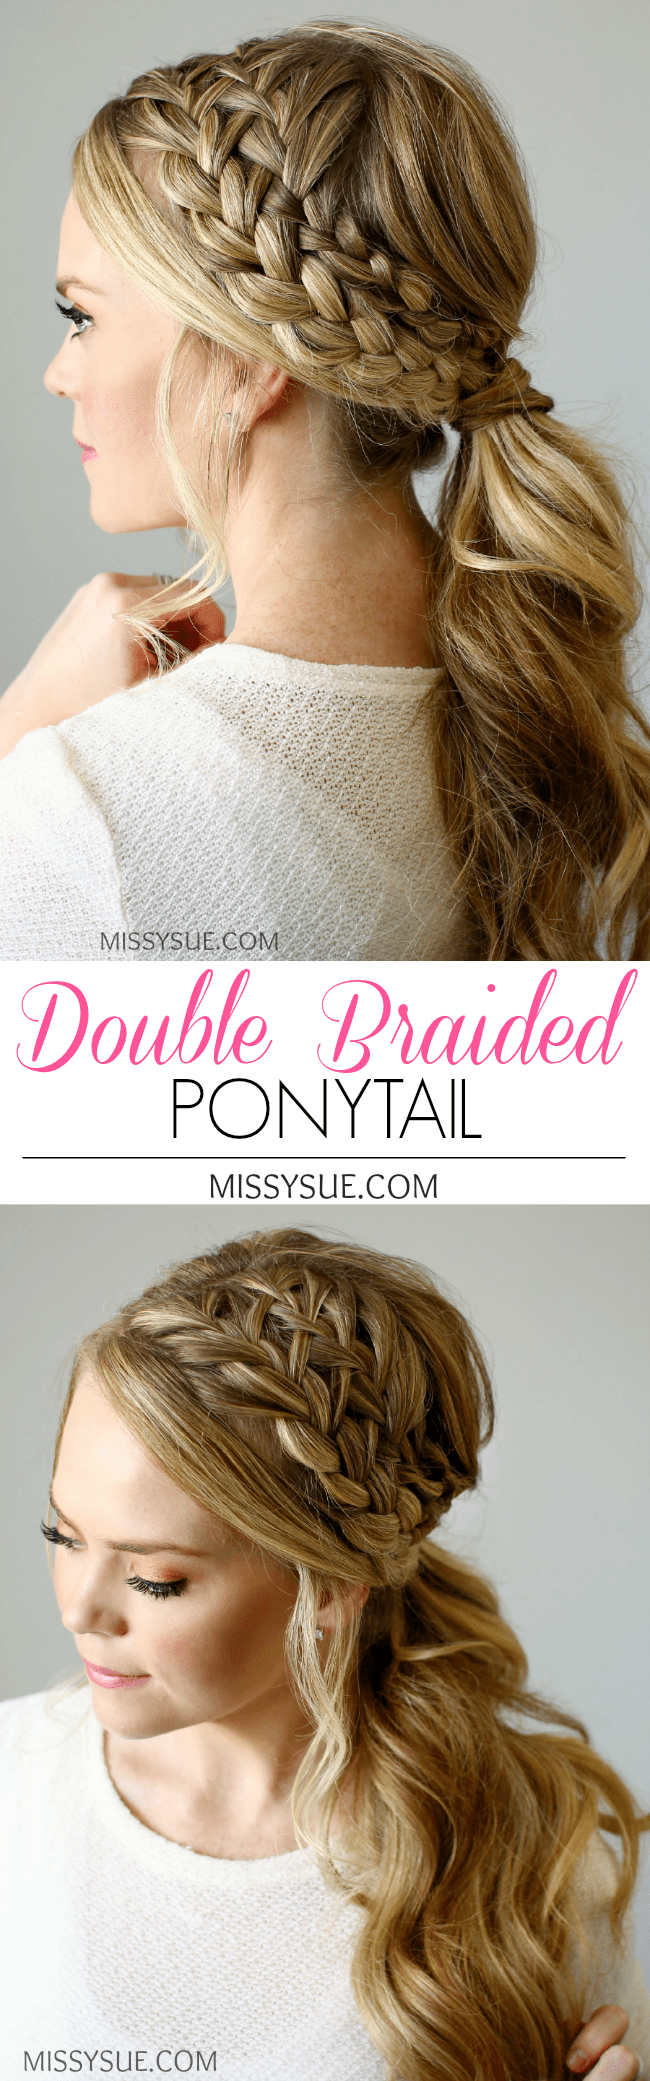 Long Hairstyle: Long Braided Hairstyles. Full Hd Long Braided Hairstyles Of For Women Androids Pics The Prettiest Hair With